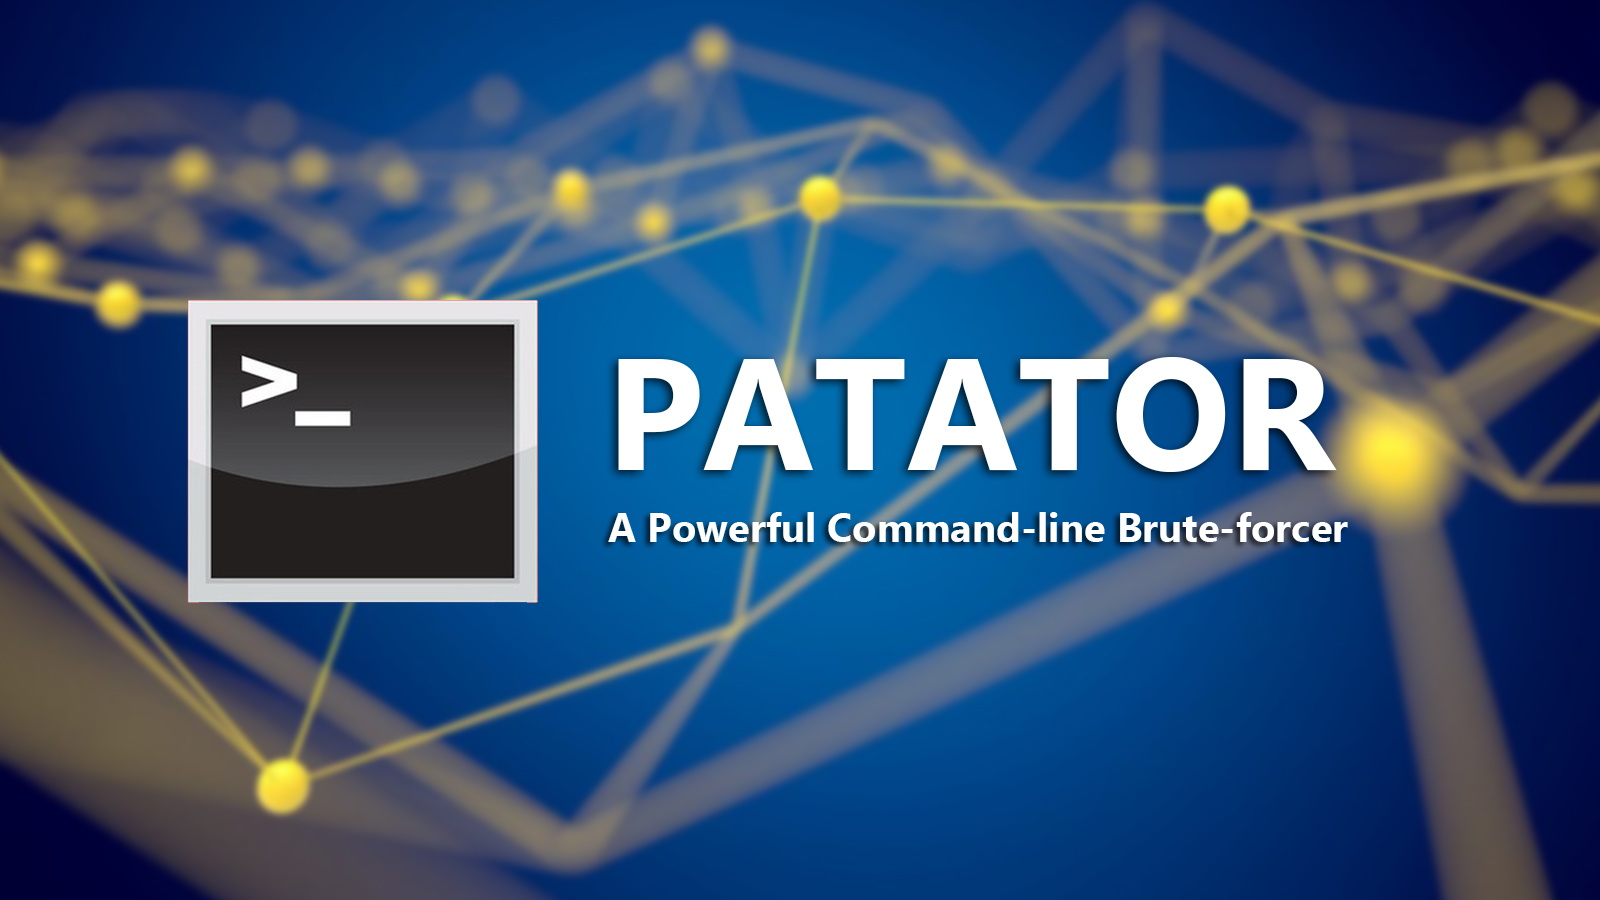 Patator - A Powerful Command-line Brute-forcer - Hacking Reviews